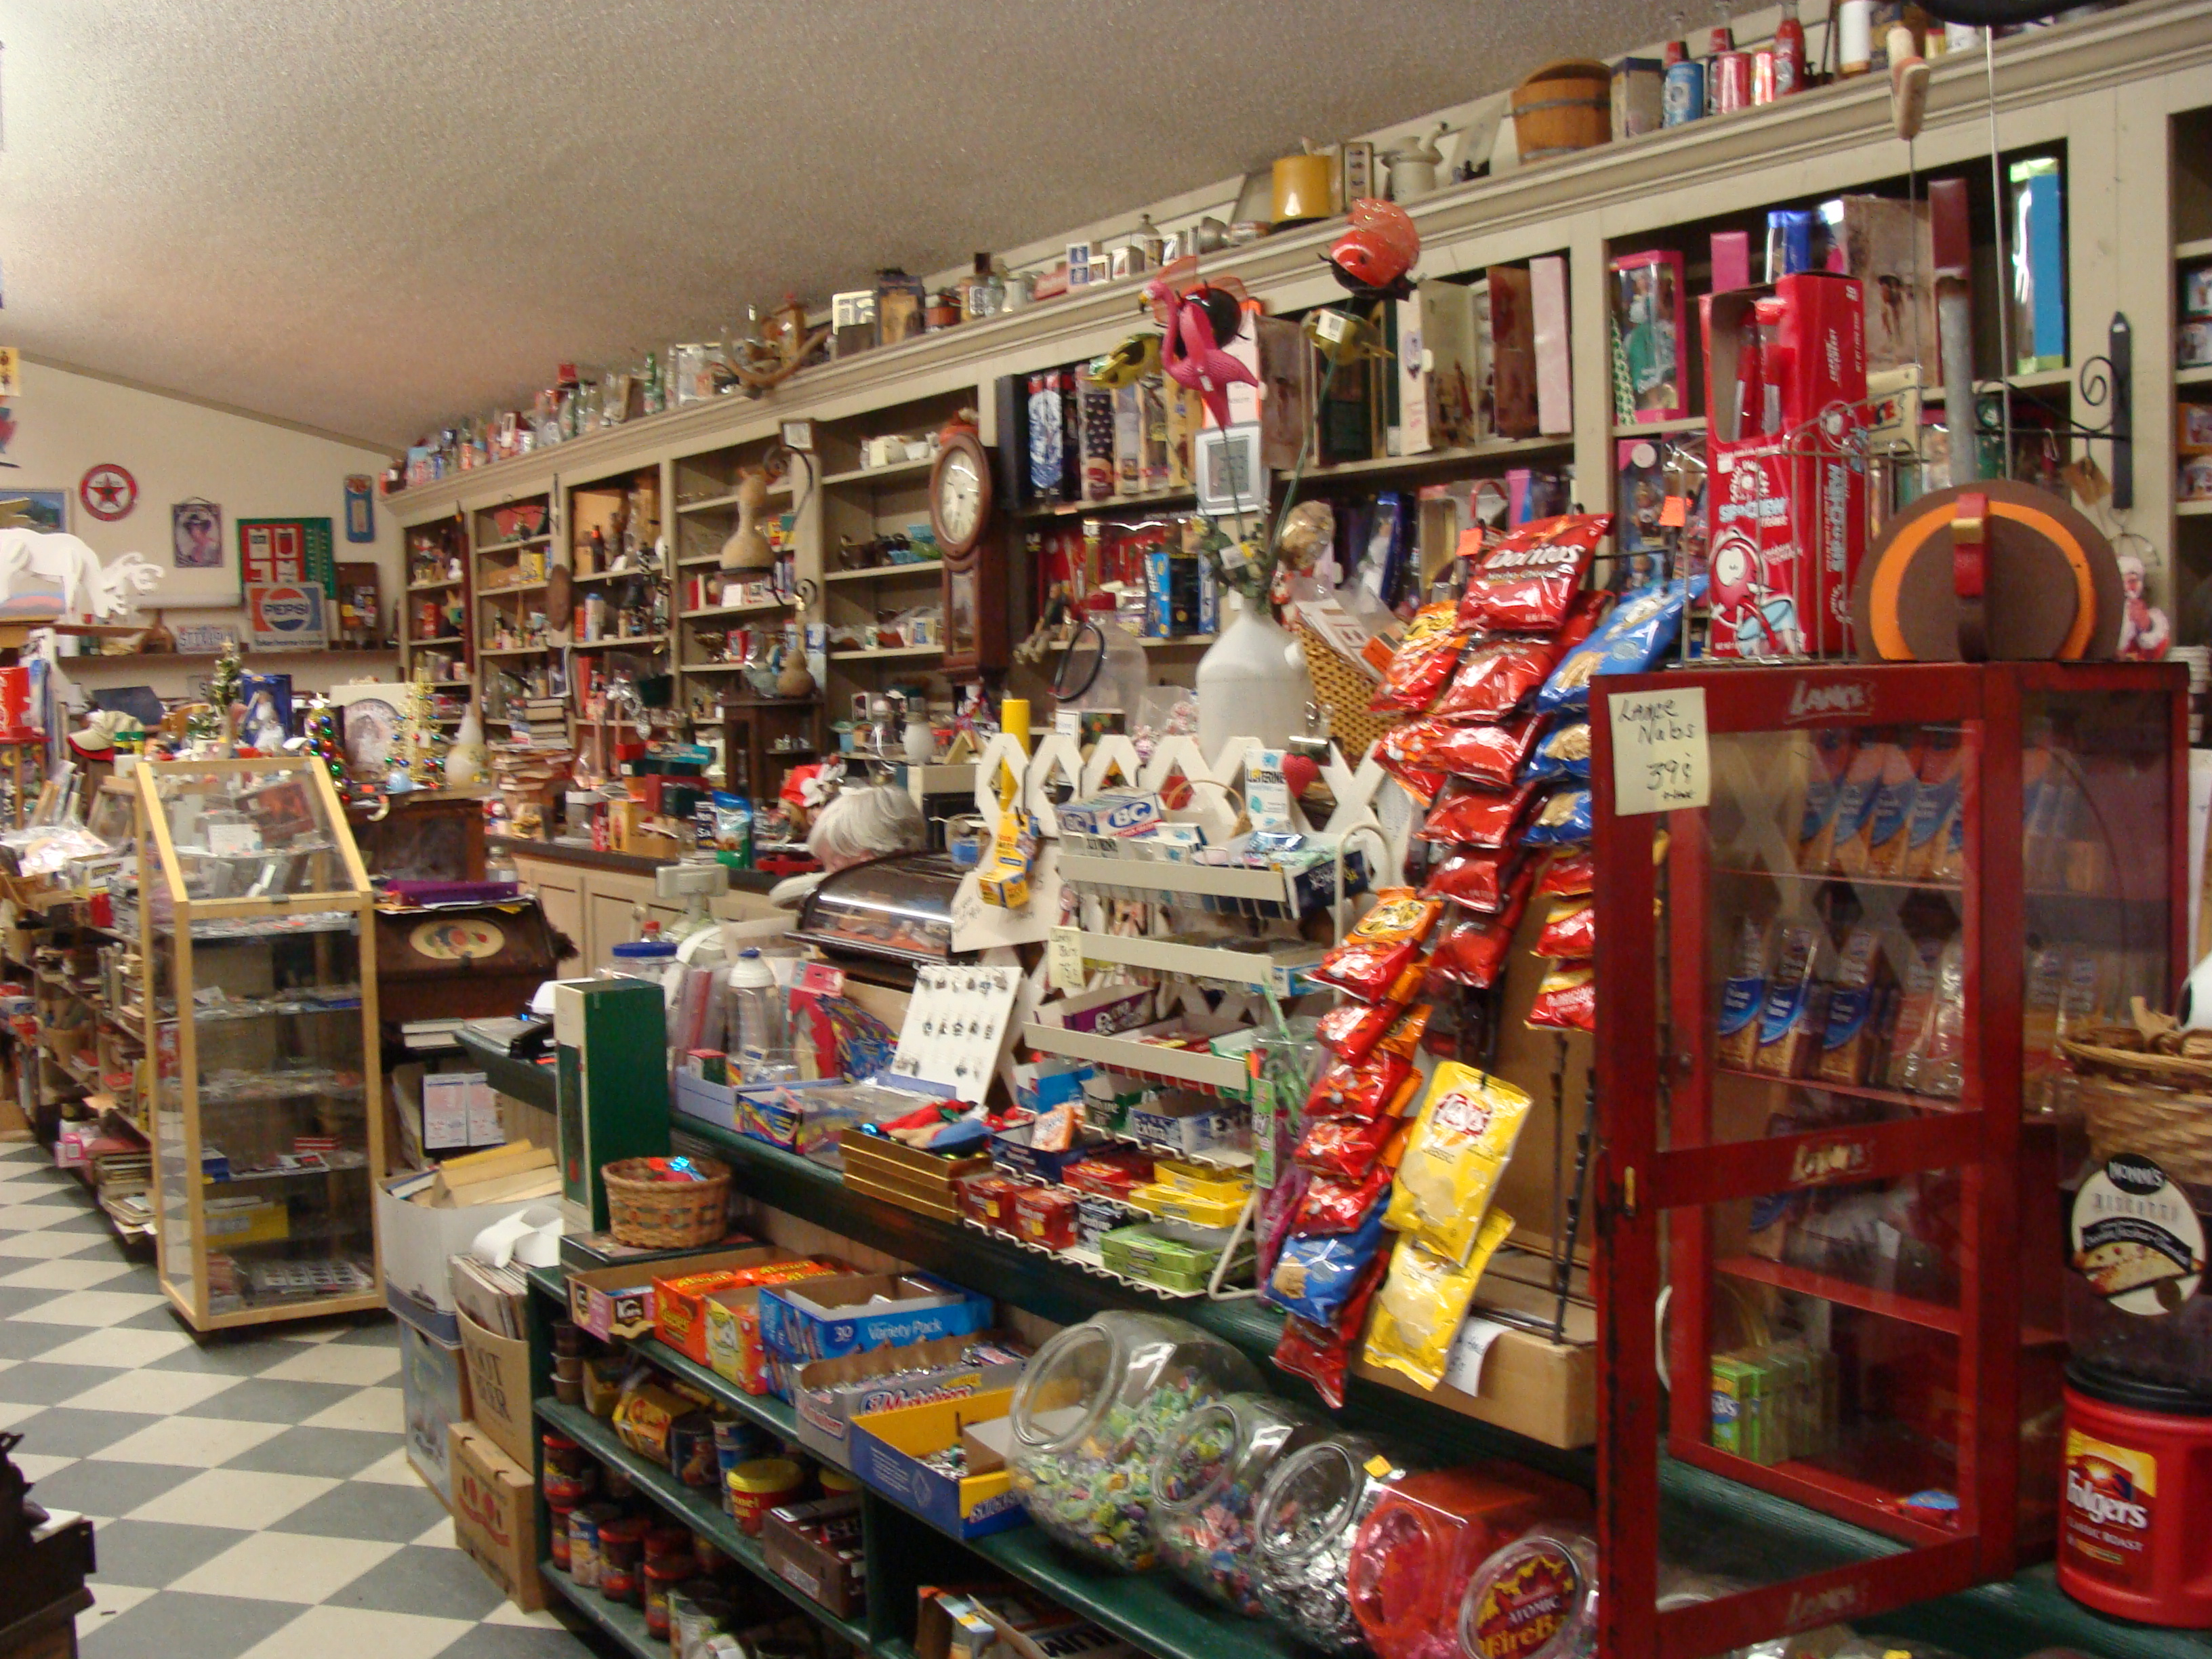 General store psalmboxkey 39 s blog for Old fashioned general store near me